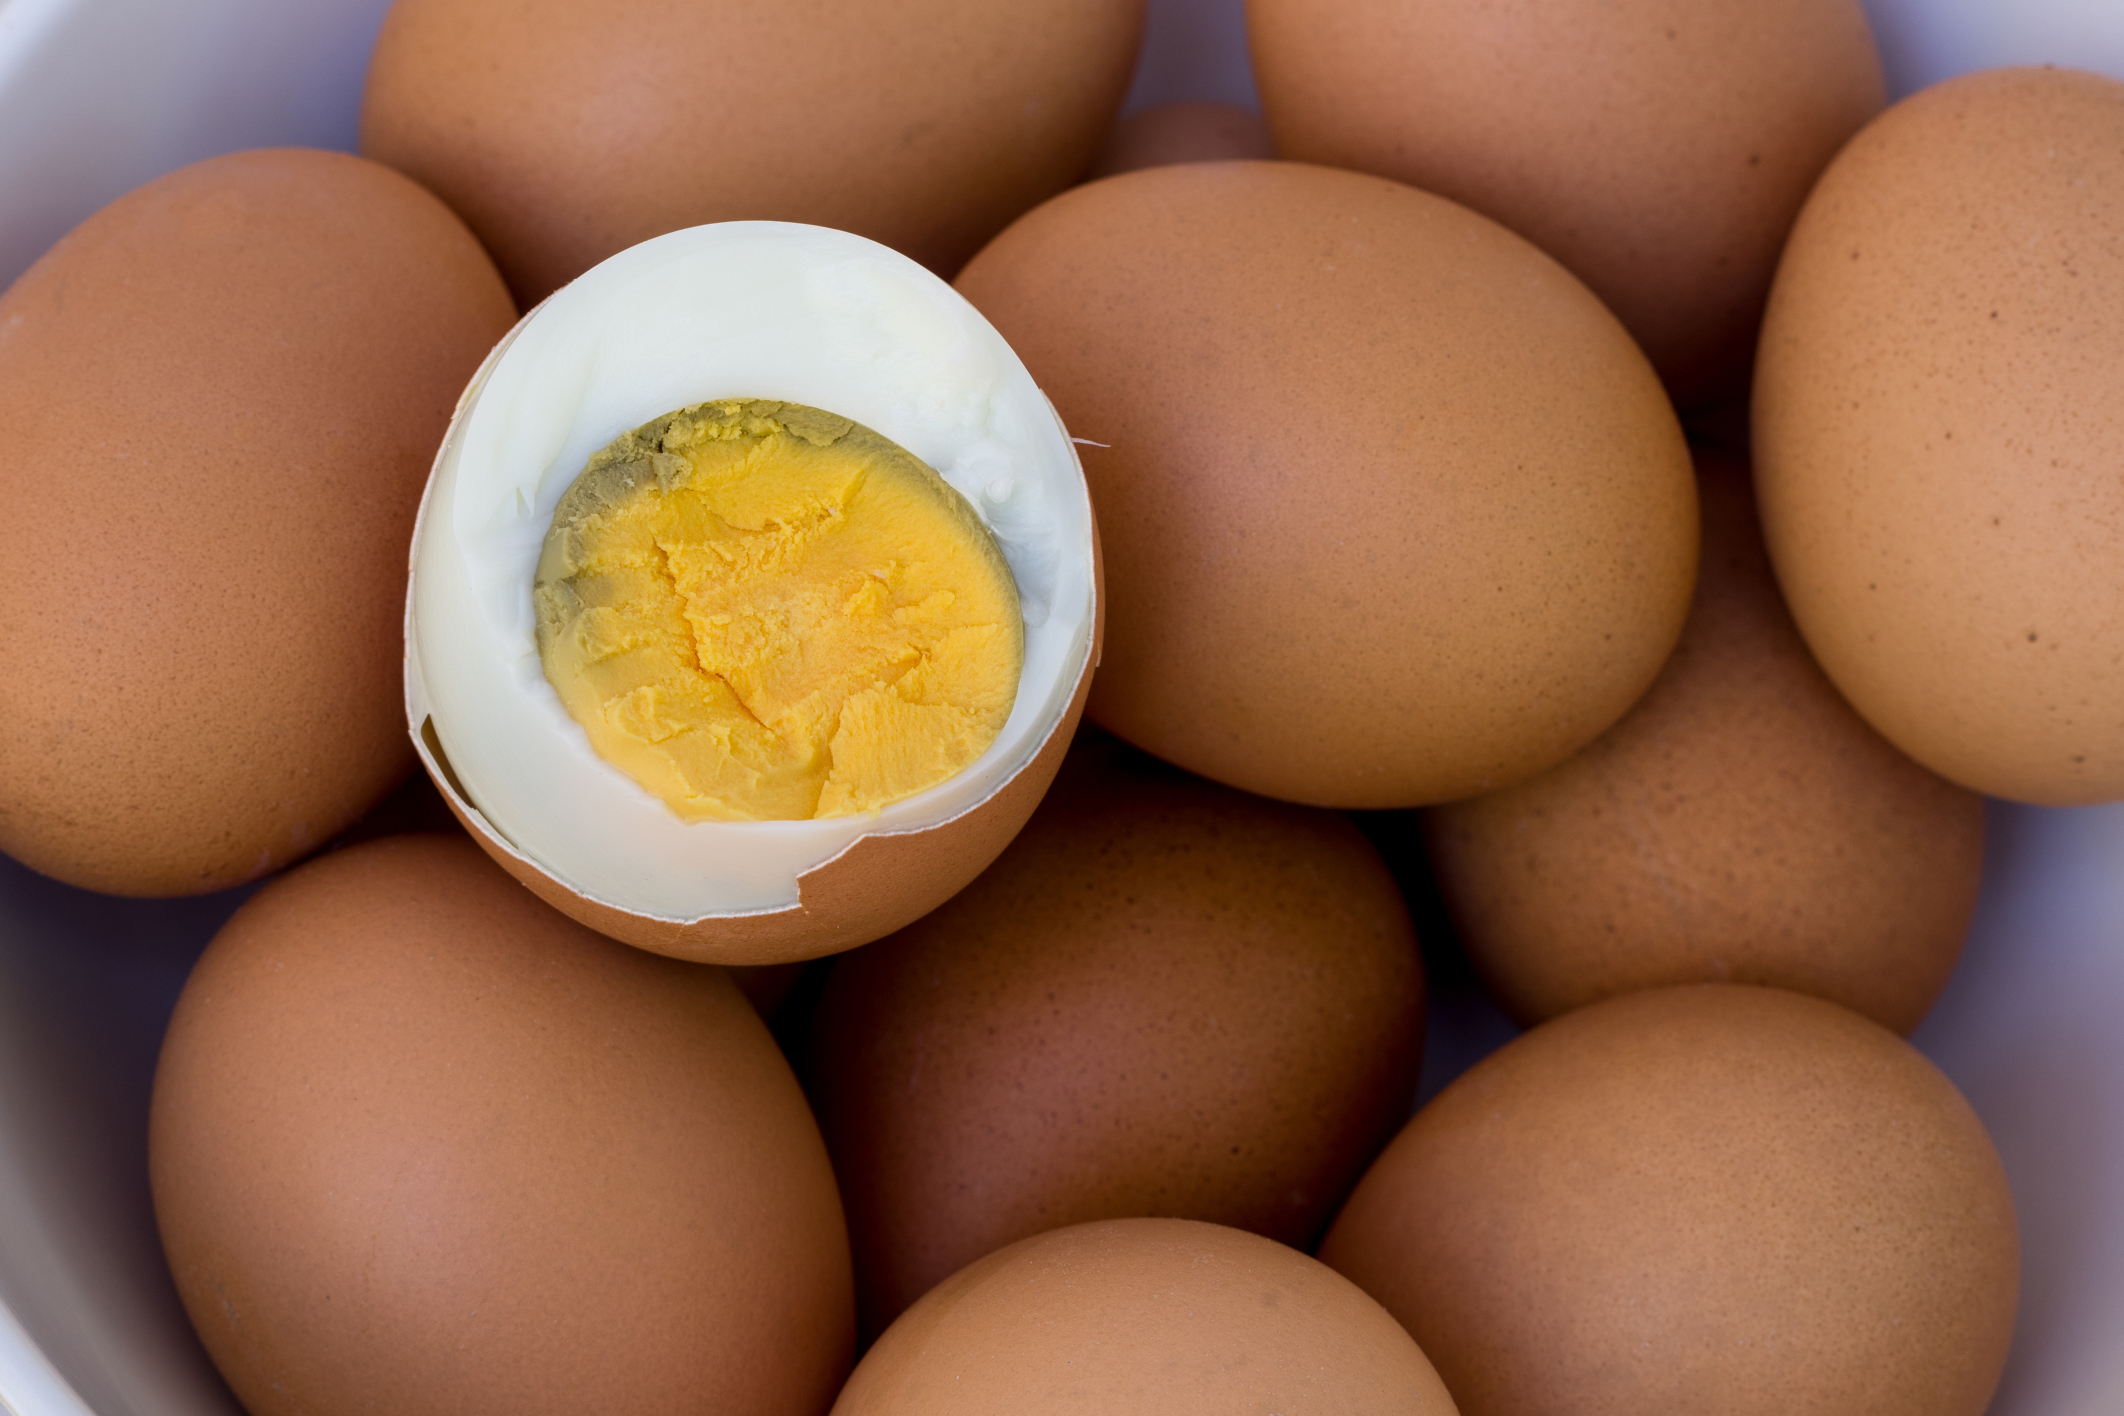 Can You Lose Weight by Eating Six Boiled Eggs a Day  LIVESTRONGCOM